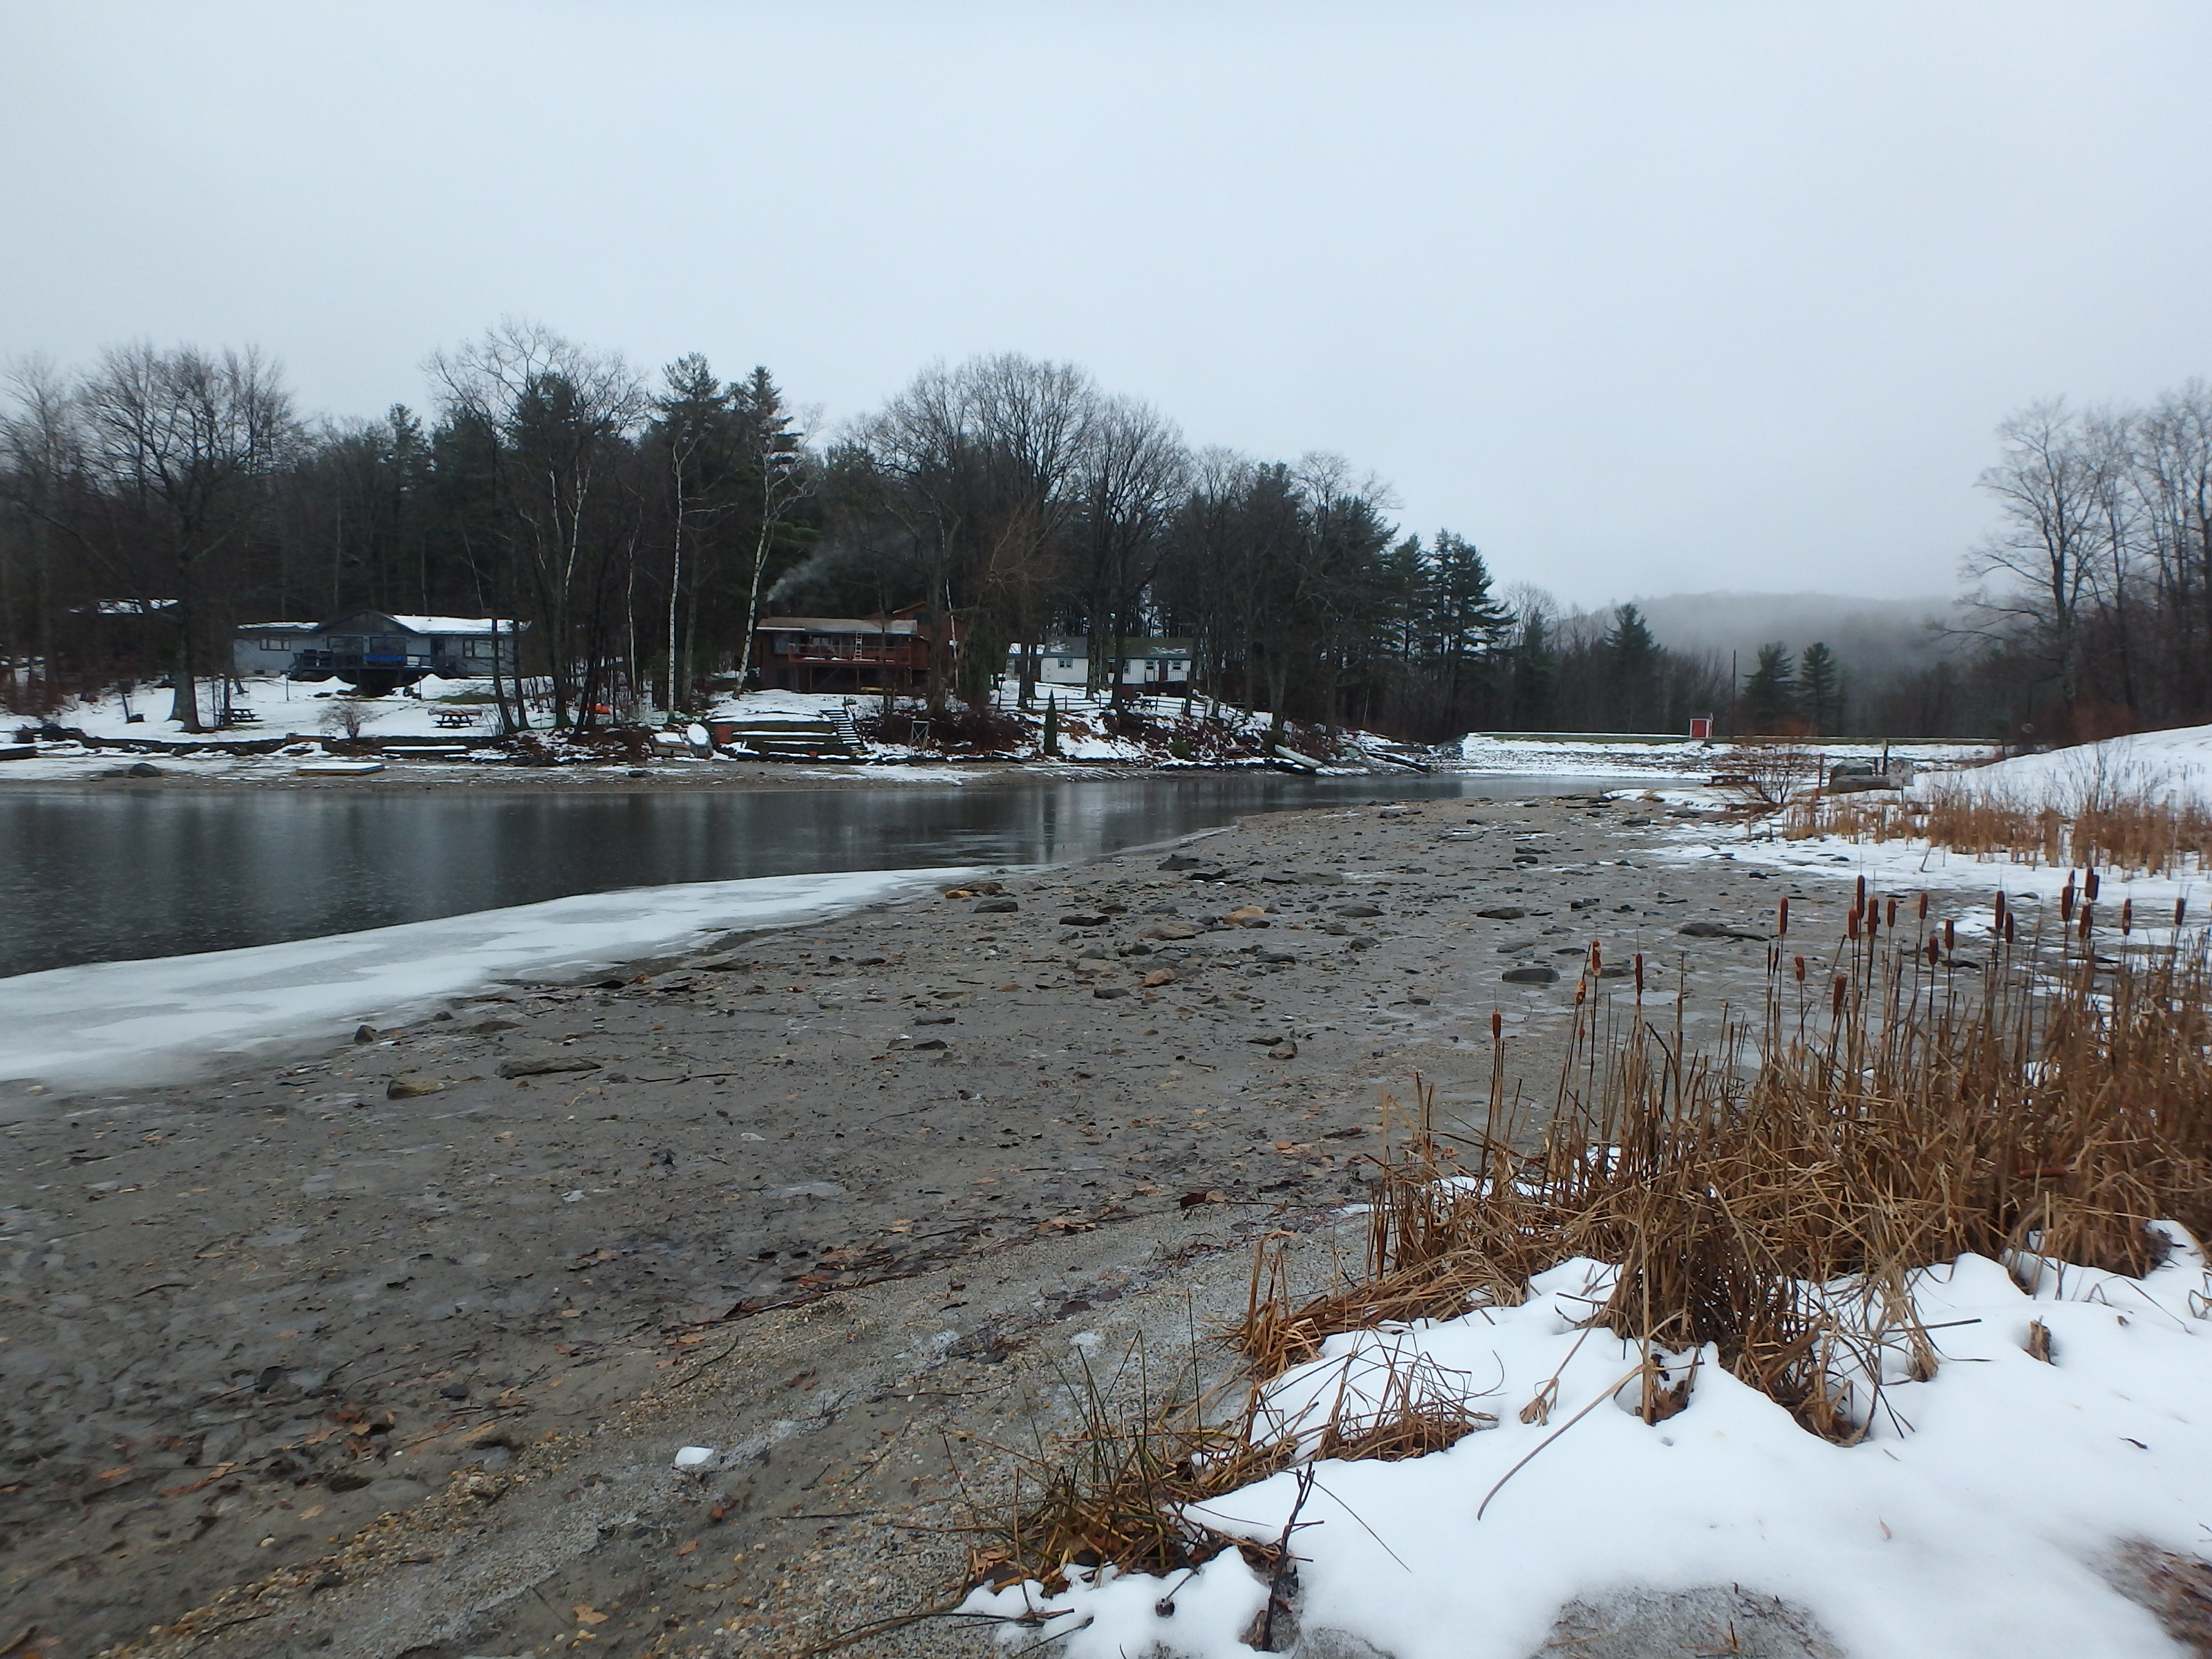 Goose Pond (Tyringham, MA) undergoing a winter drawdown